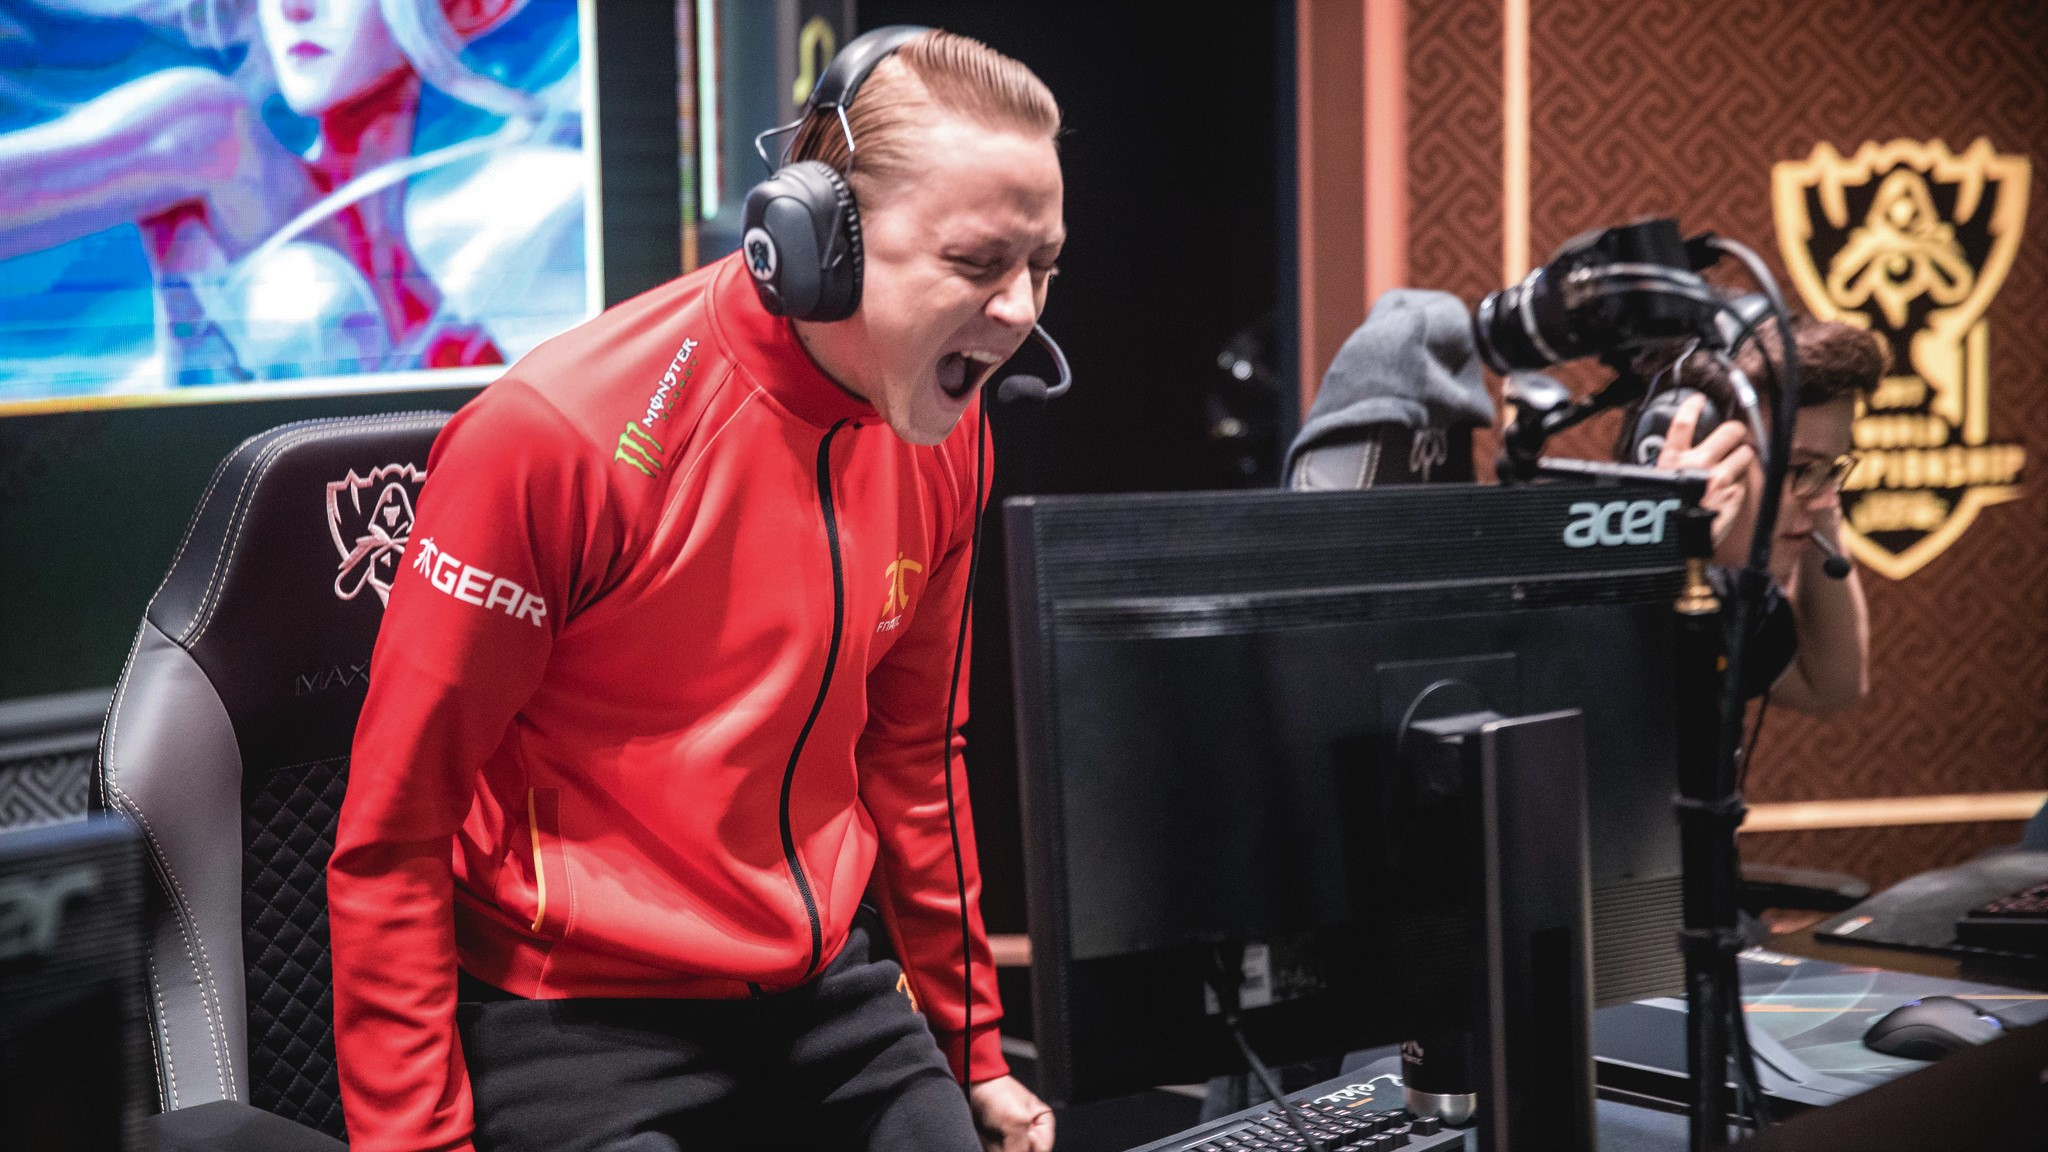 19 of the best photos from the Worlds group stage | Dot Esports